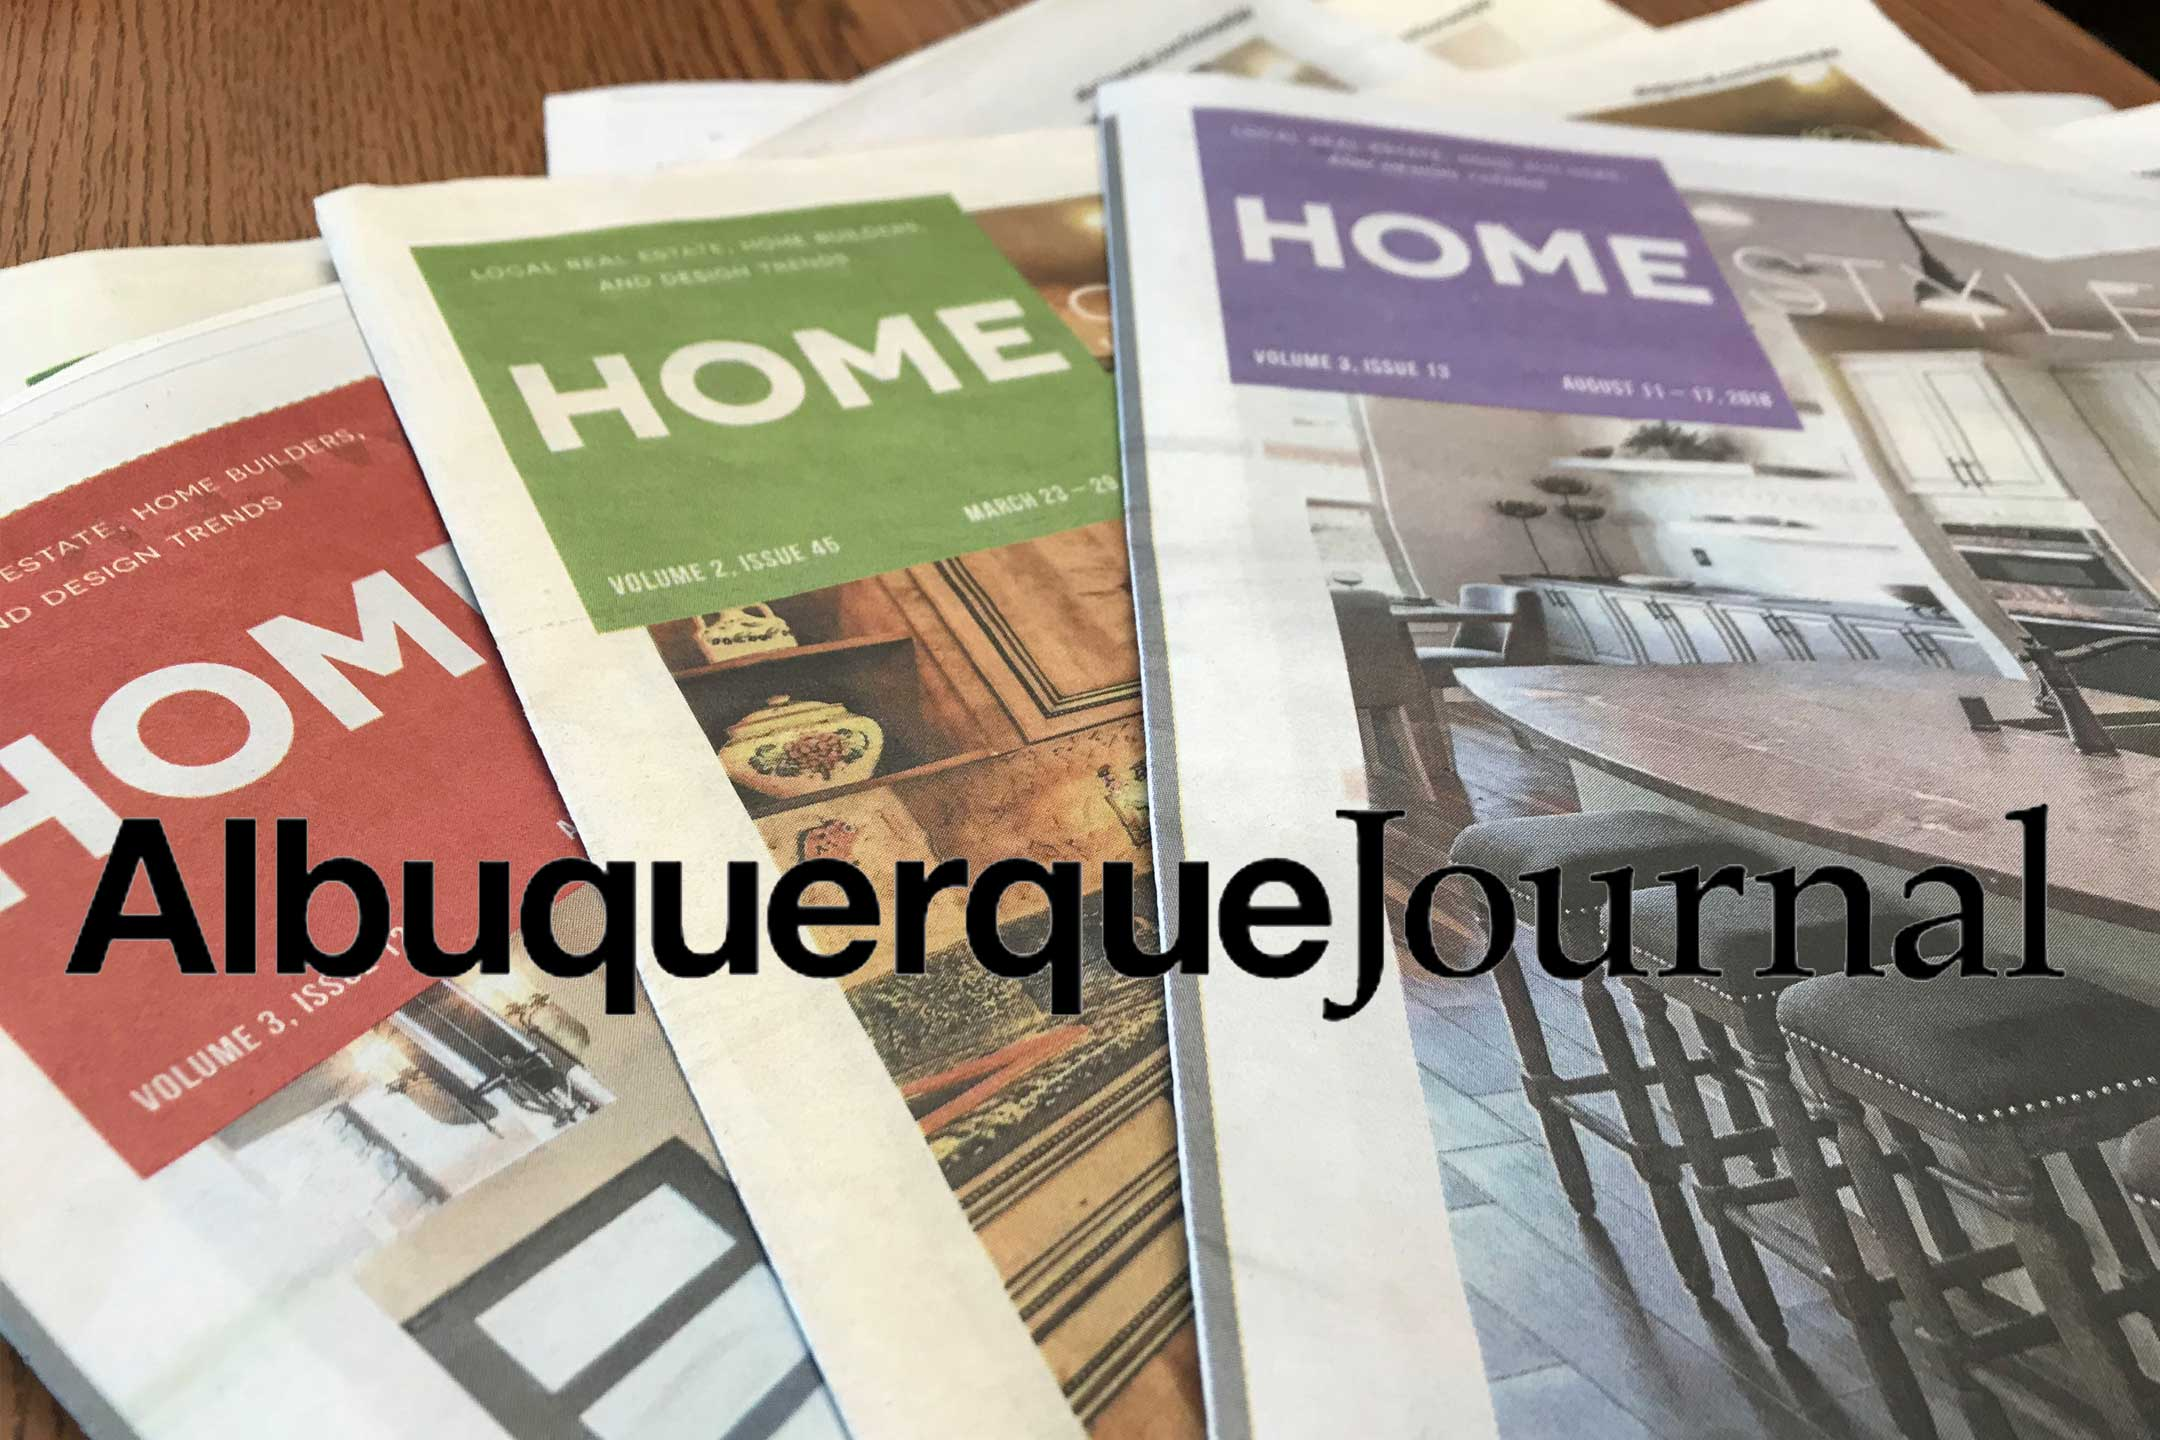 NMHS partners with ABQ Journal: Learn more September 6th